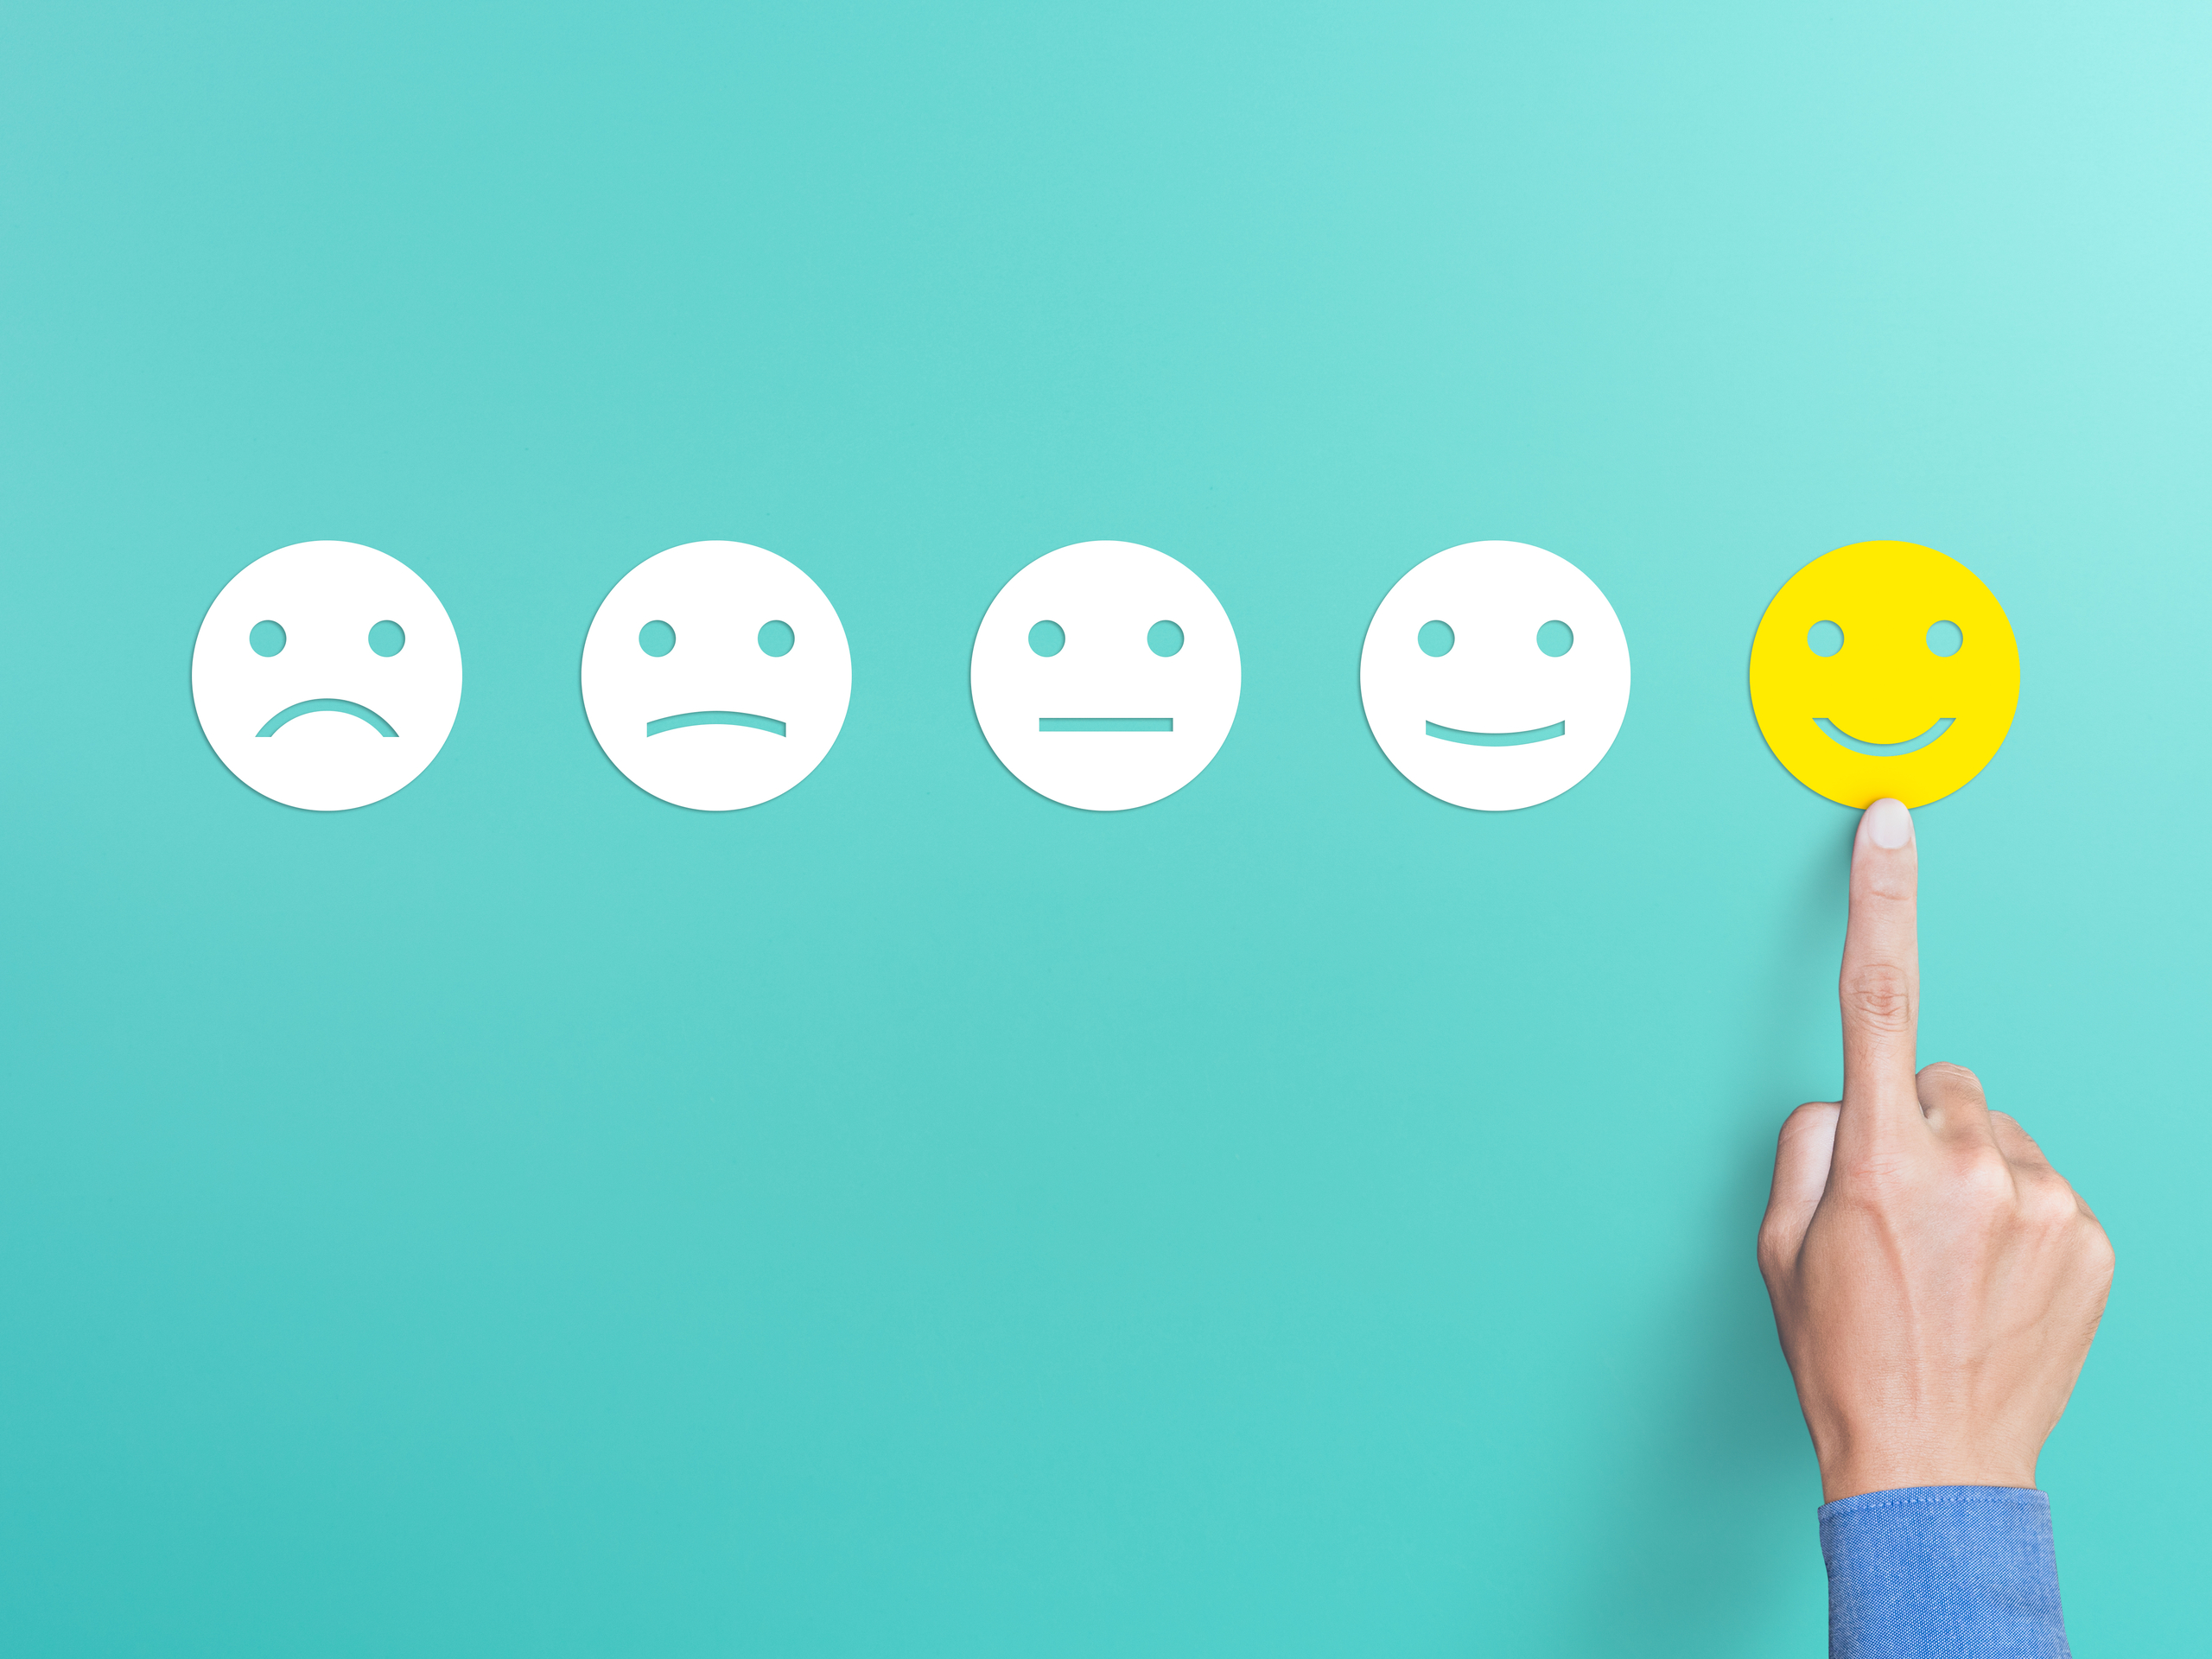 Hand pointing at smiley face icon on rating scale